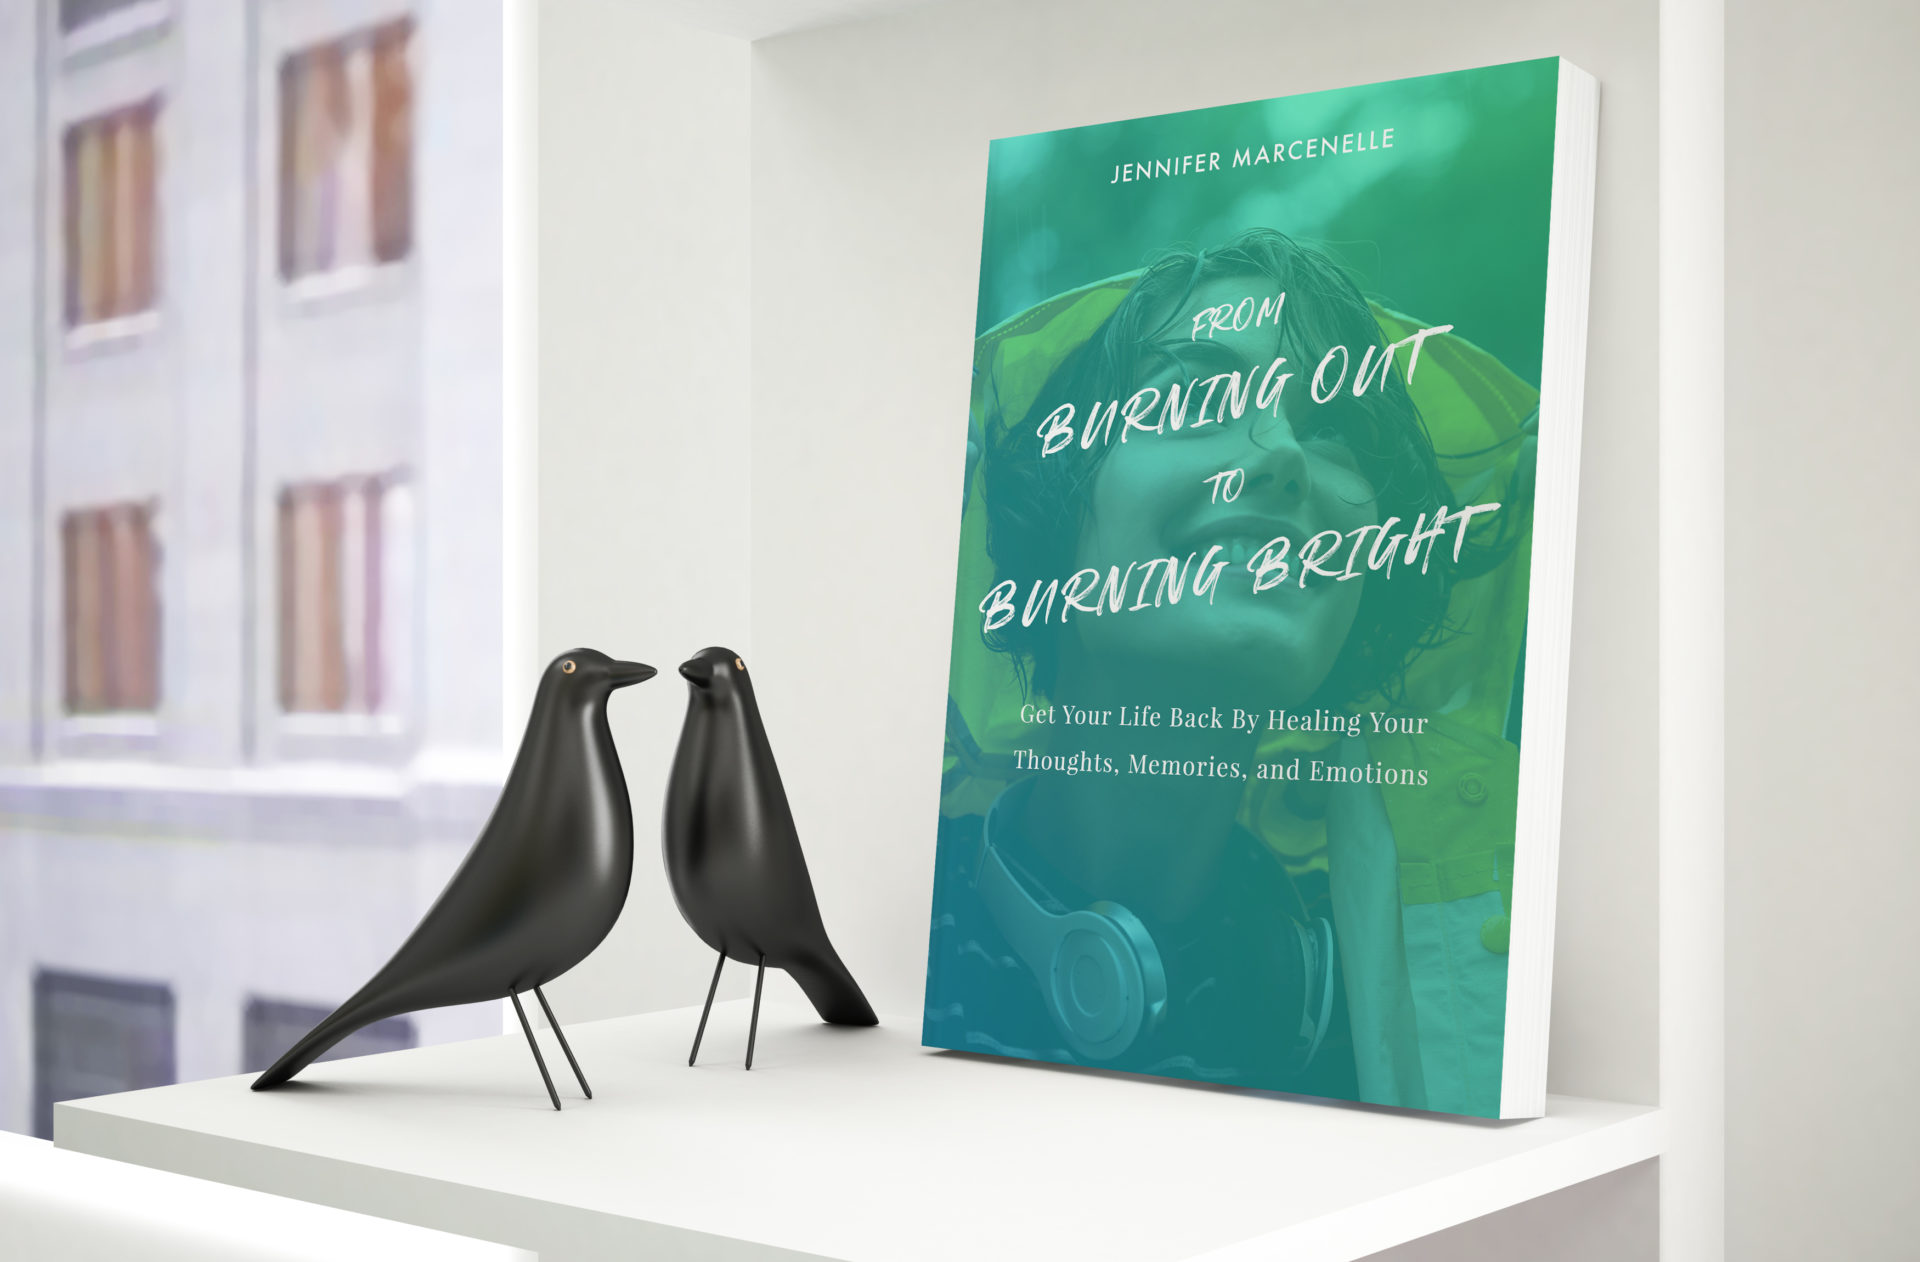 burn bright today book cover mockup